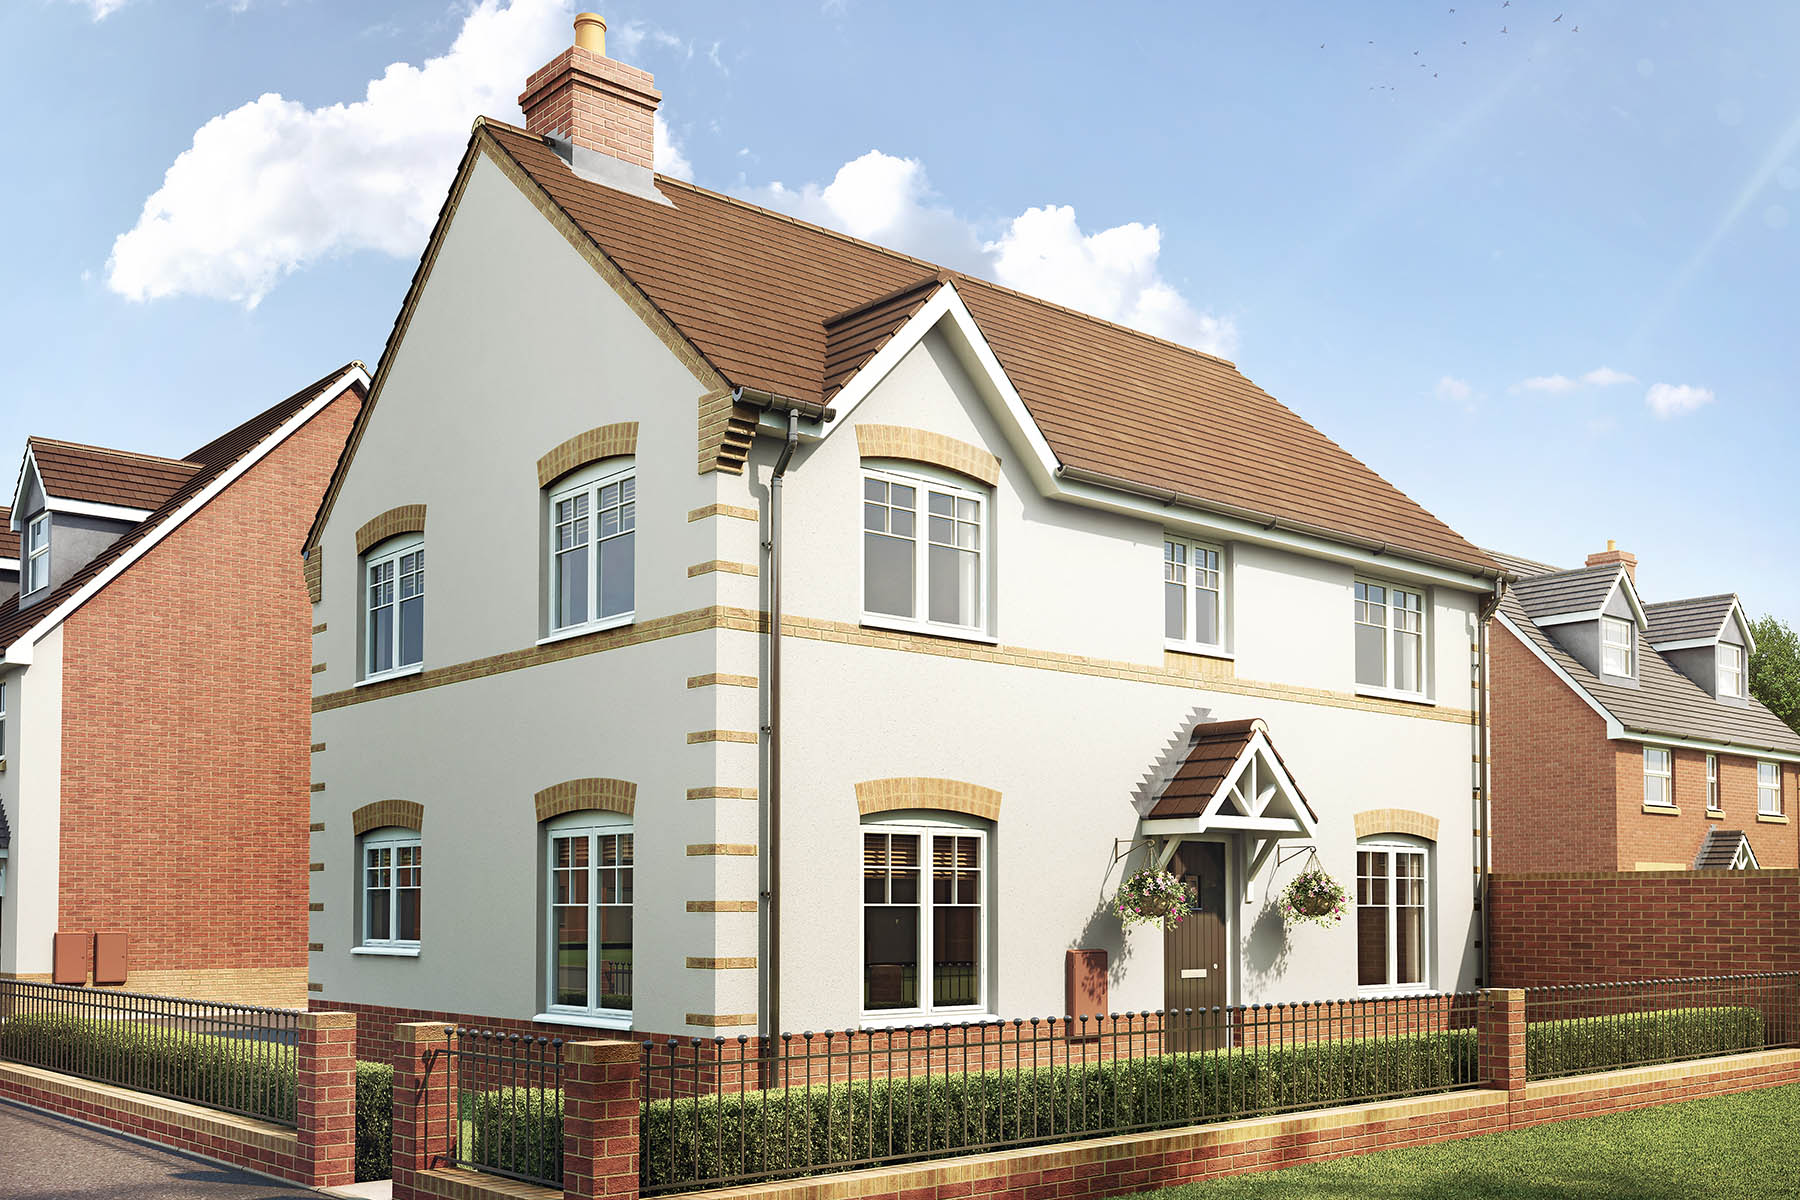 Meadowsweet Farm - New homes in Leamington Spa   Taylor Wimpey